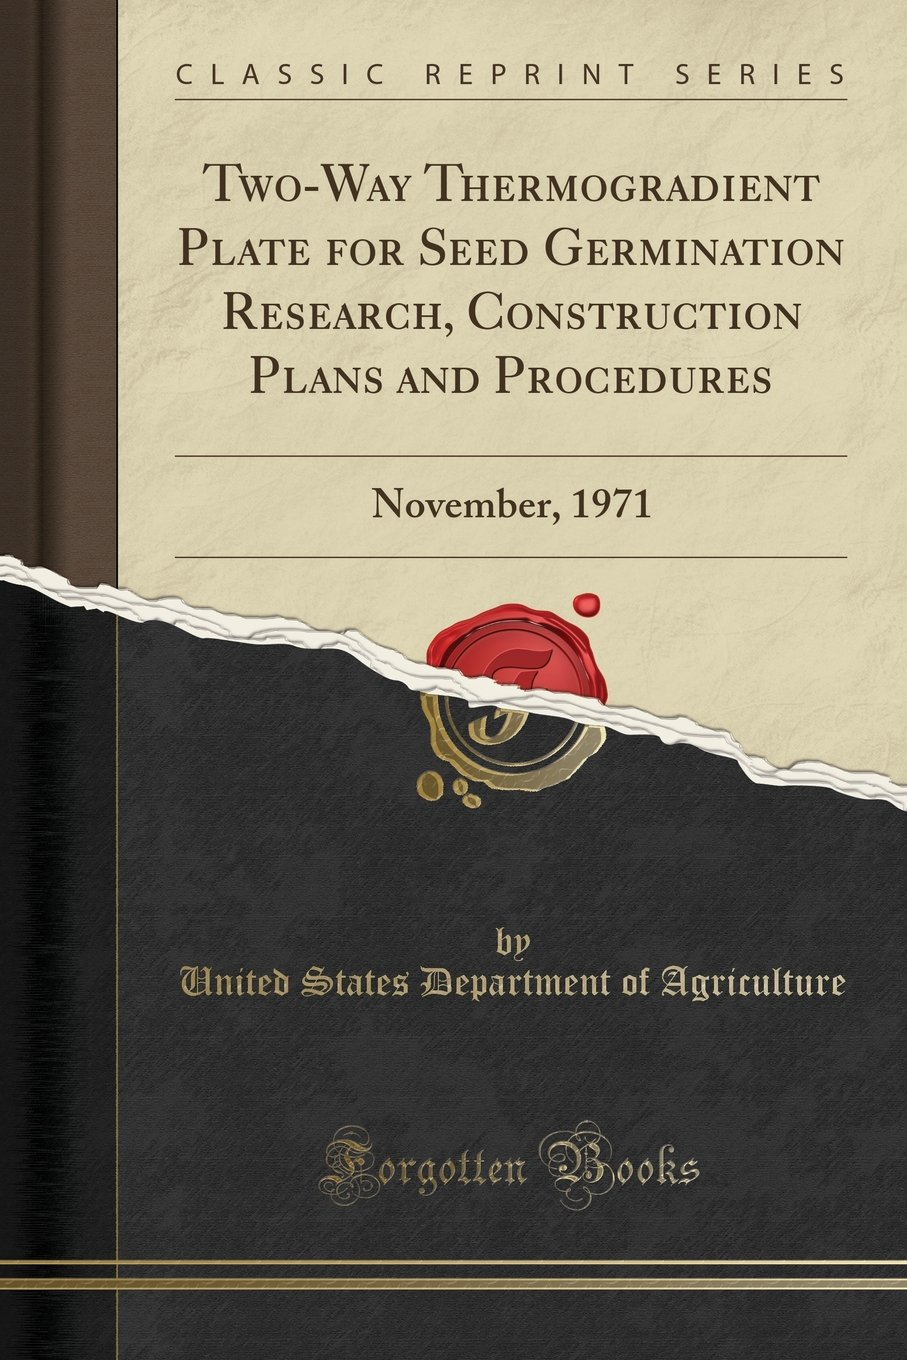 Download Two-Way Thermogradient Plate for Seed Germination Research, Construction Plans and Procedures: November, 1971 (Classic Reprint) ebook